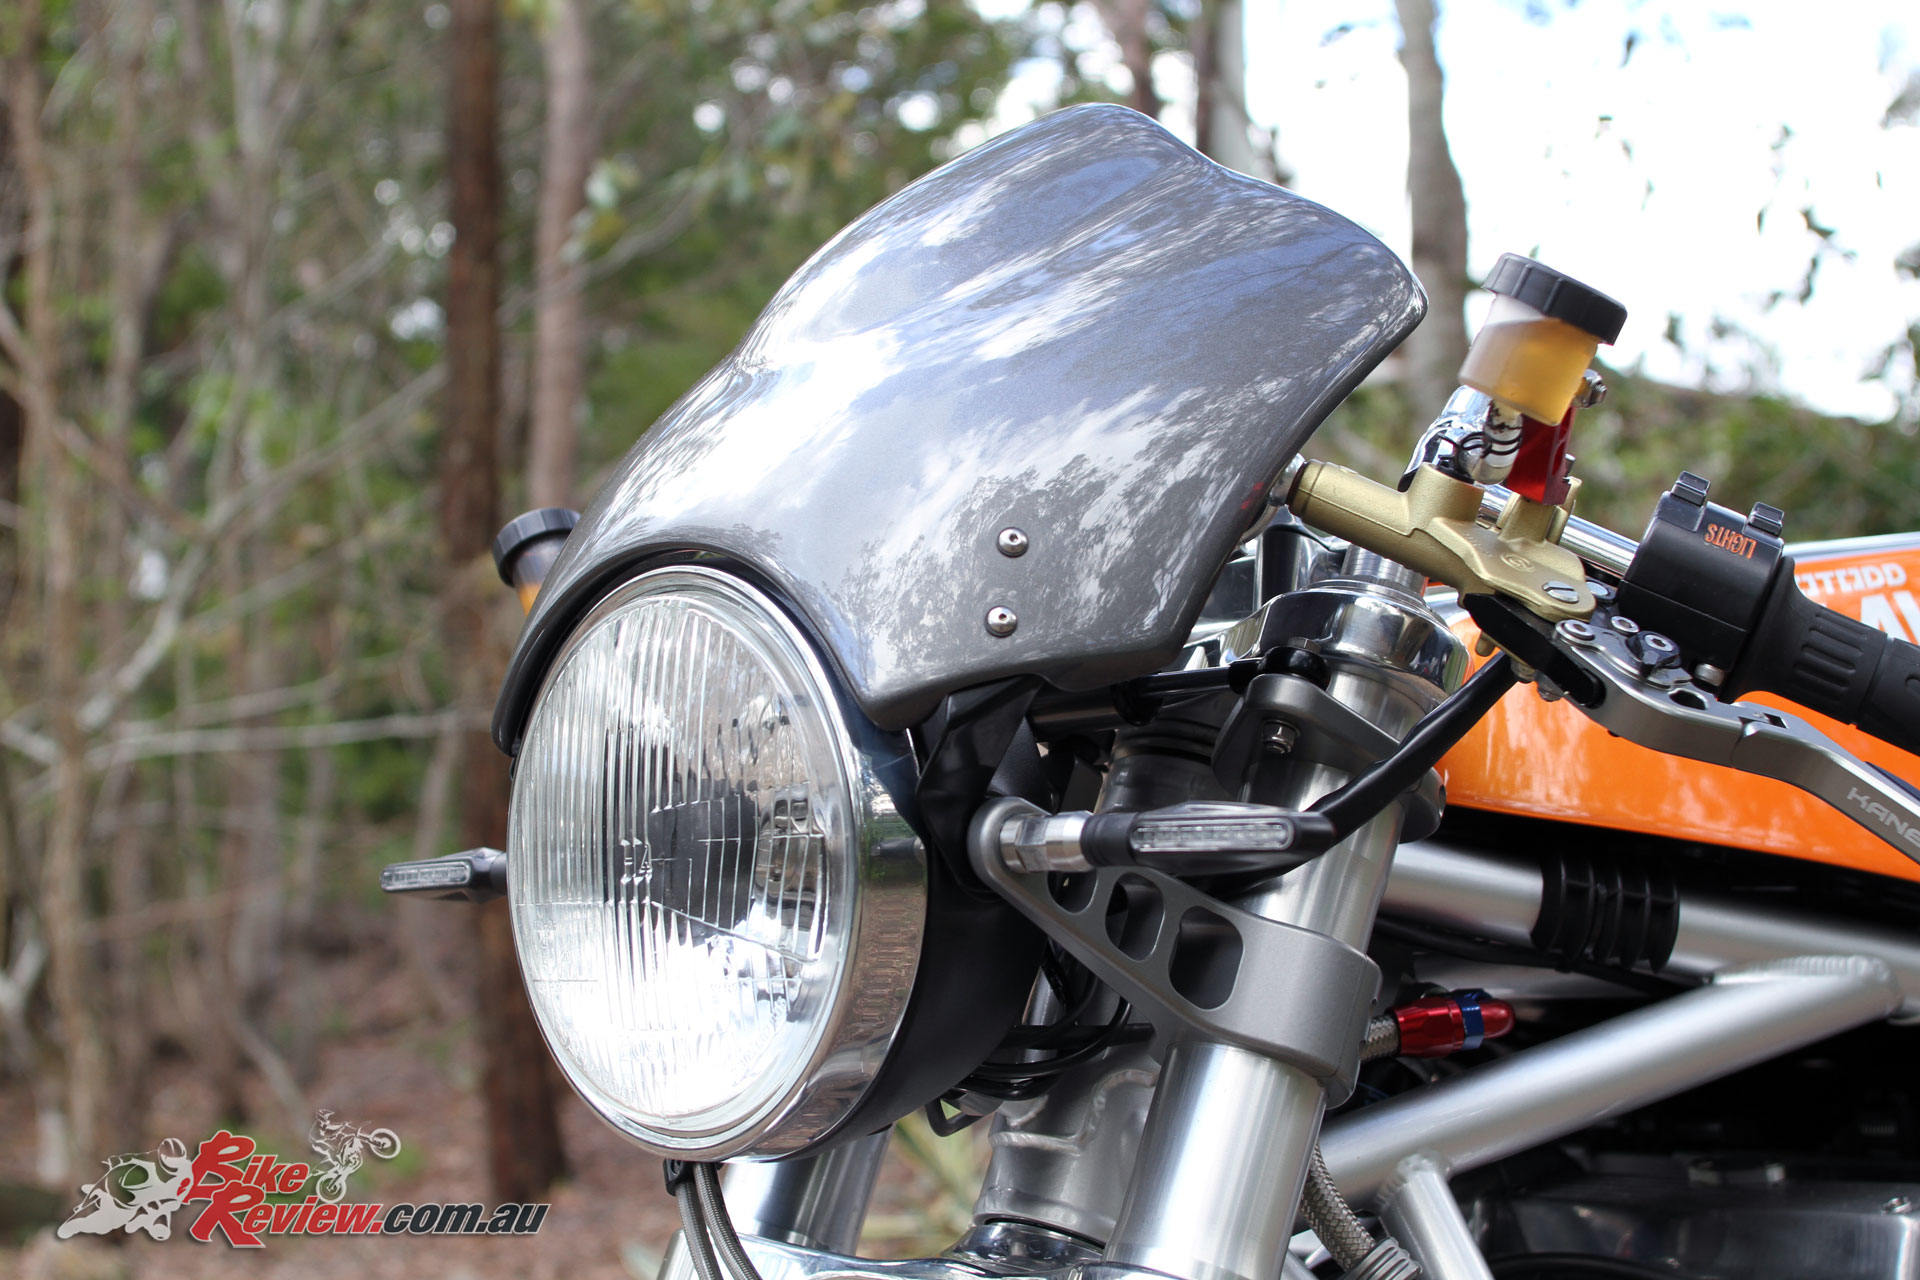 The single headlight features machined custom mounts, which incorporate the indicator mounts